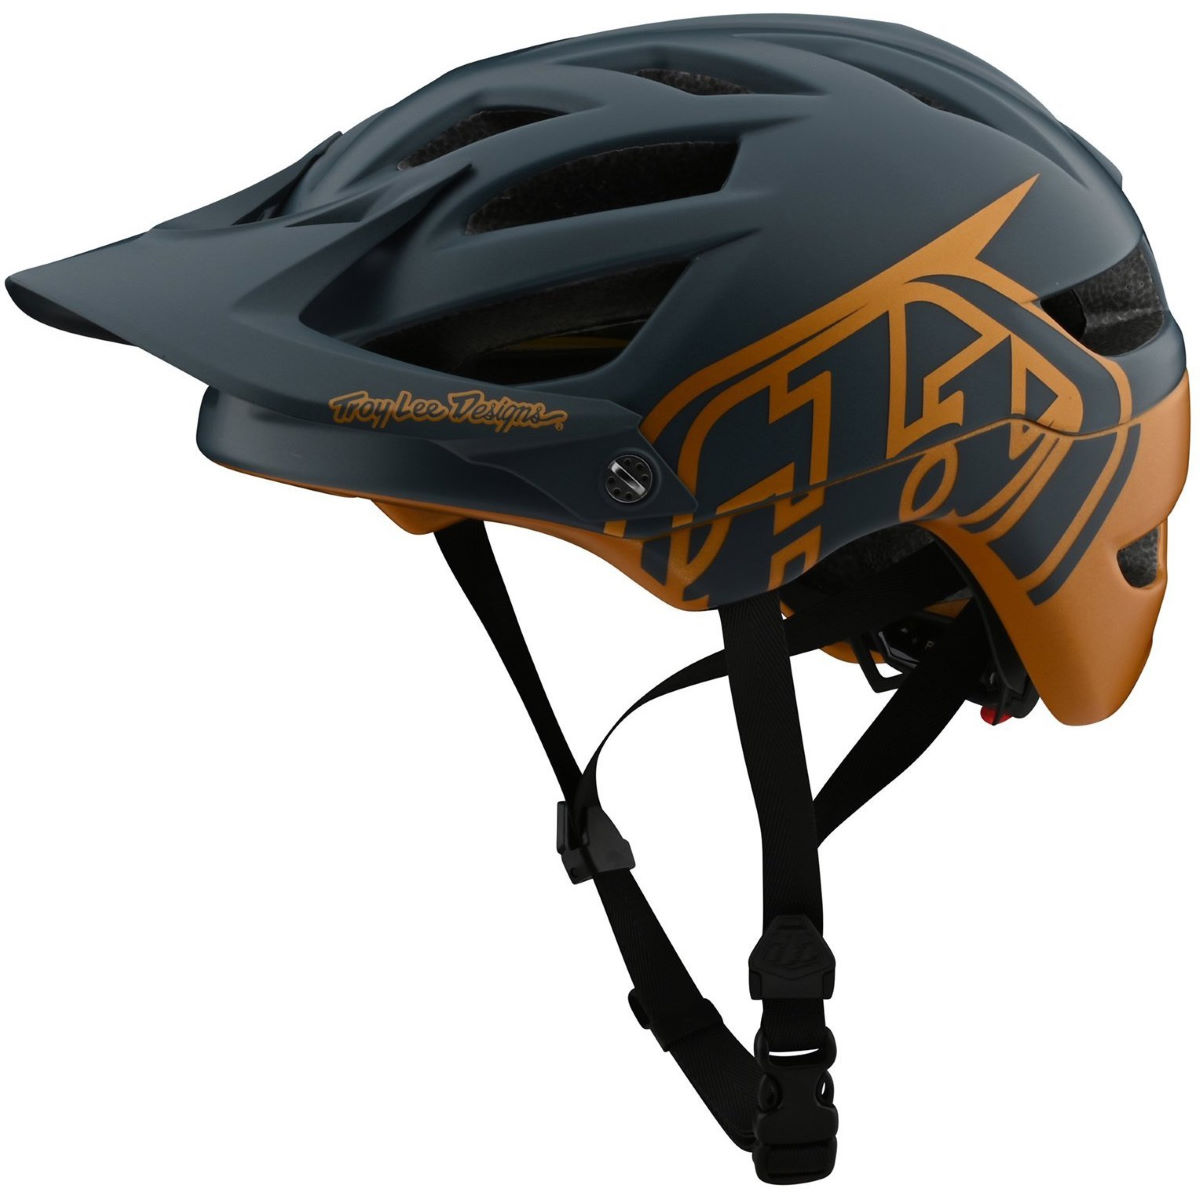 ComprarTroy Lee Designs Youth A1 Mips Classic Helmet - Cascos